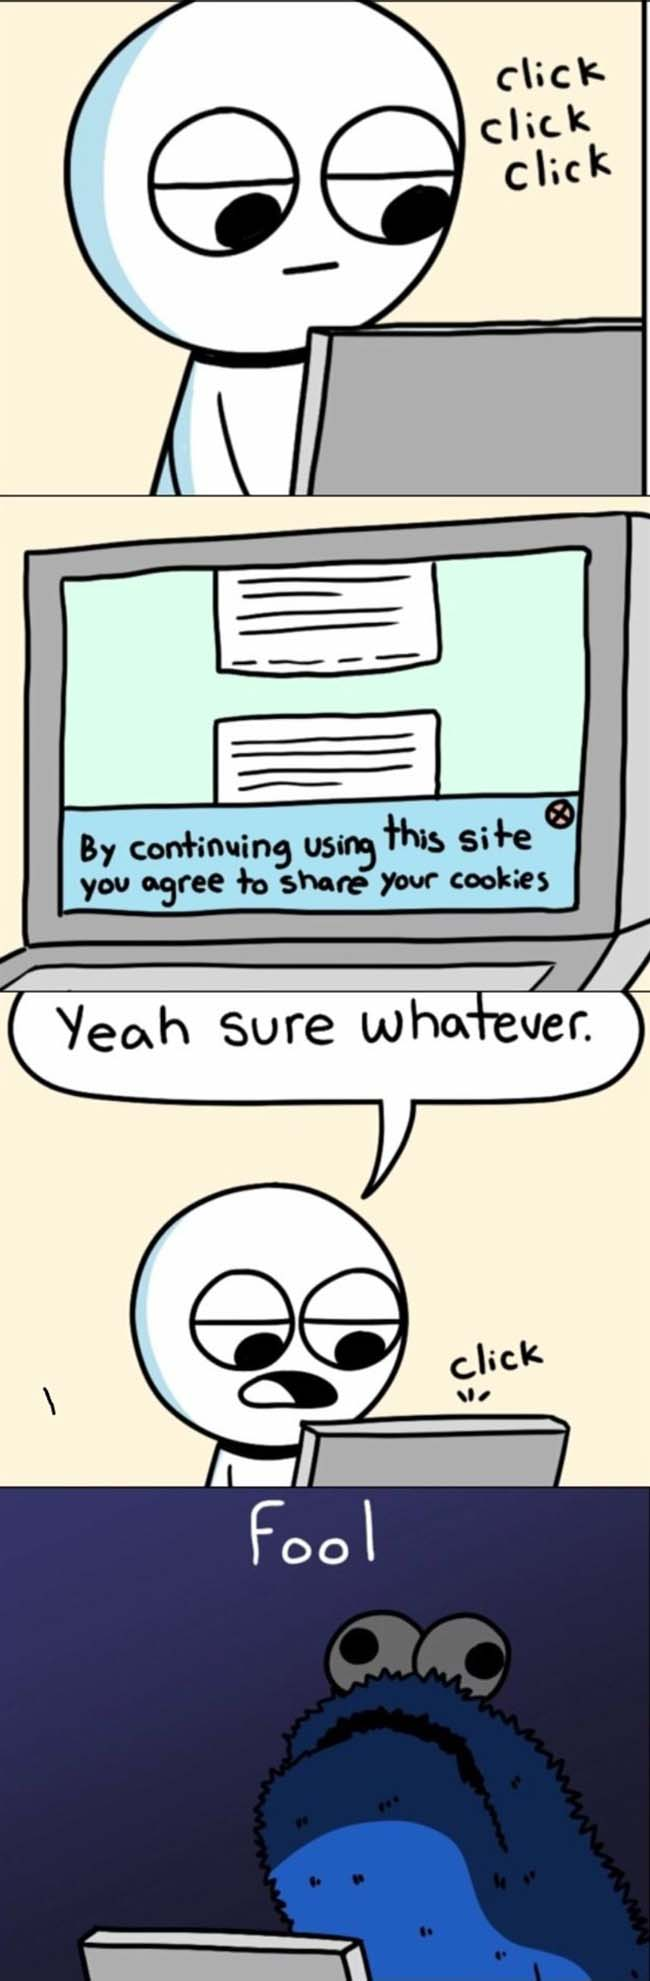 Funny comic strips and memes. (24)